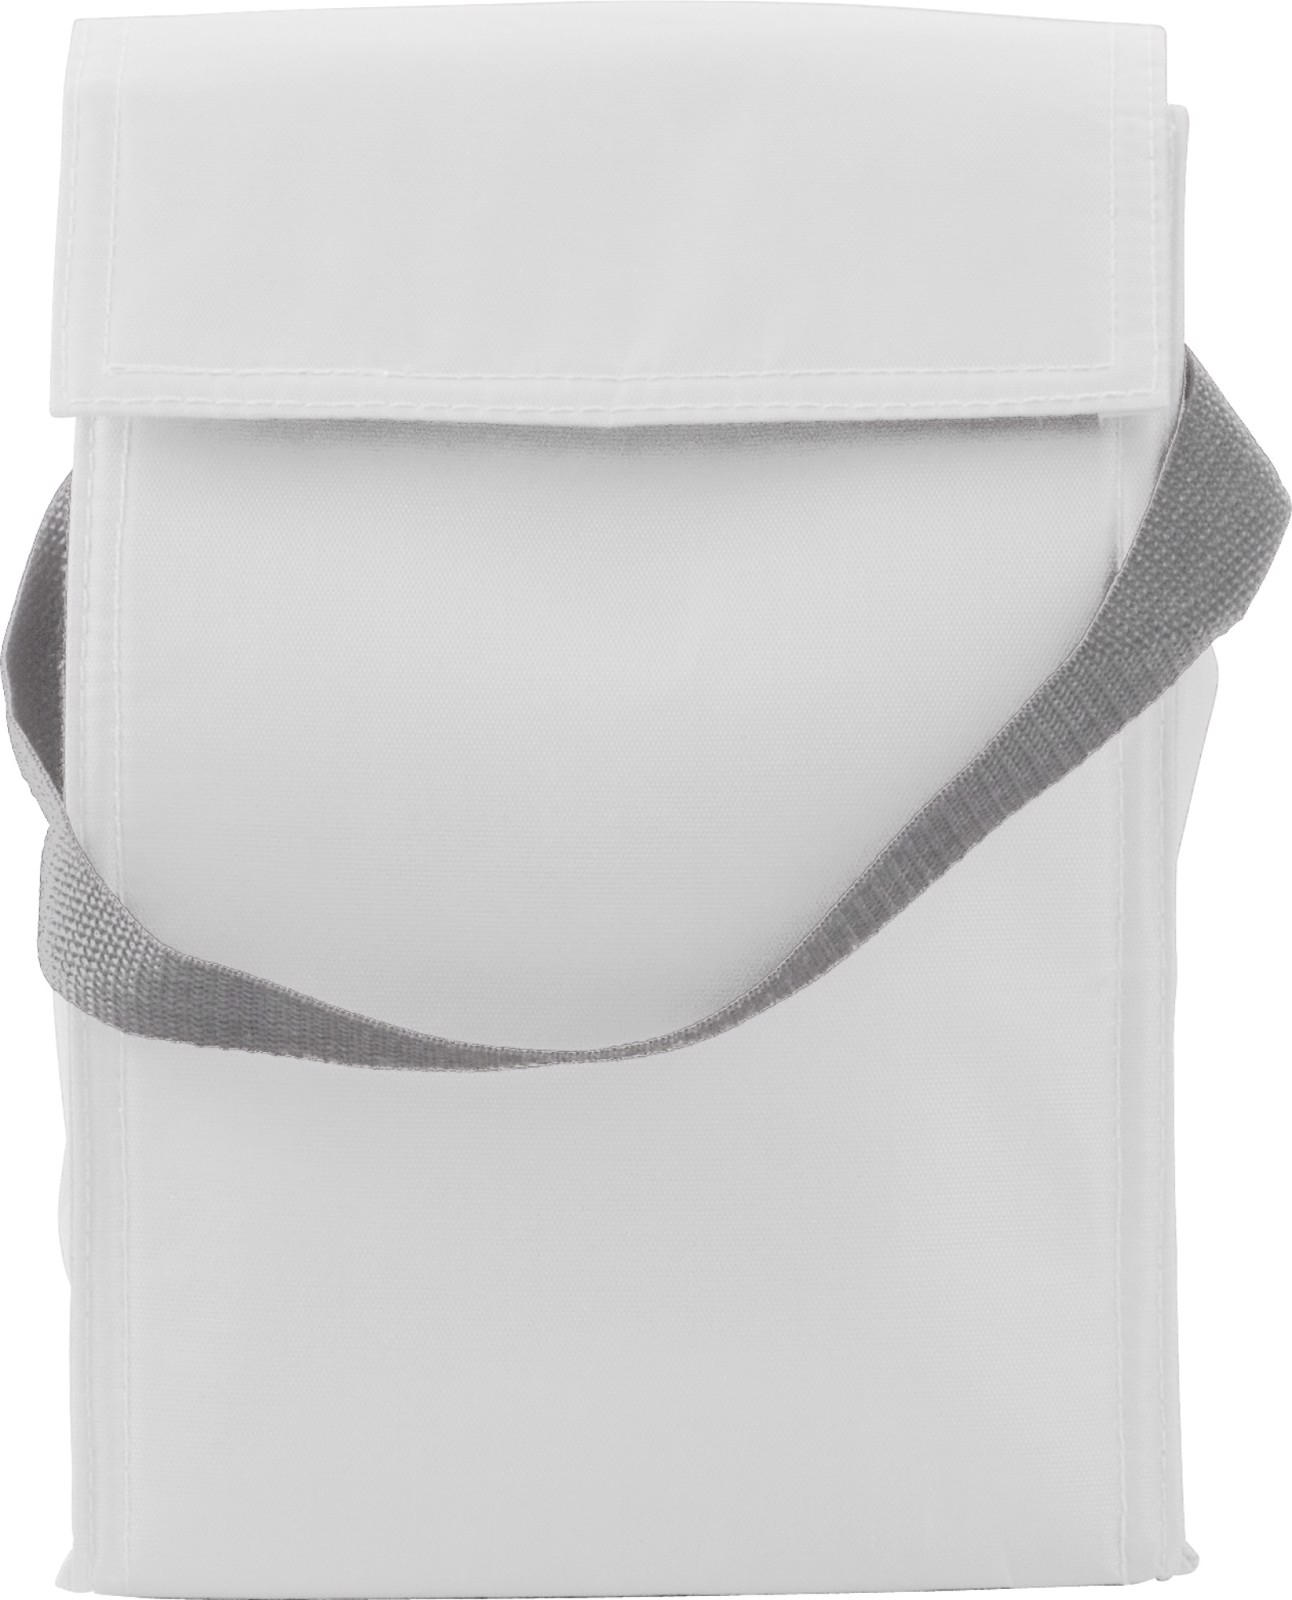 Polyester  (420D) cooler/lunch bag - White